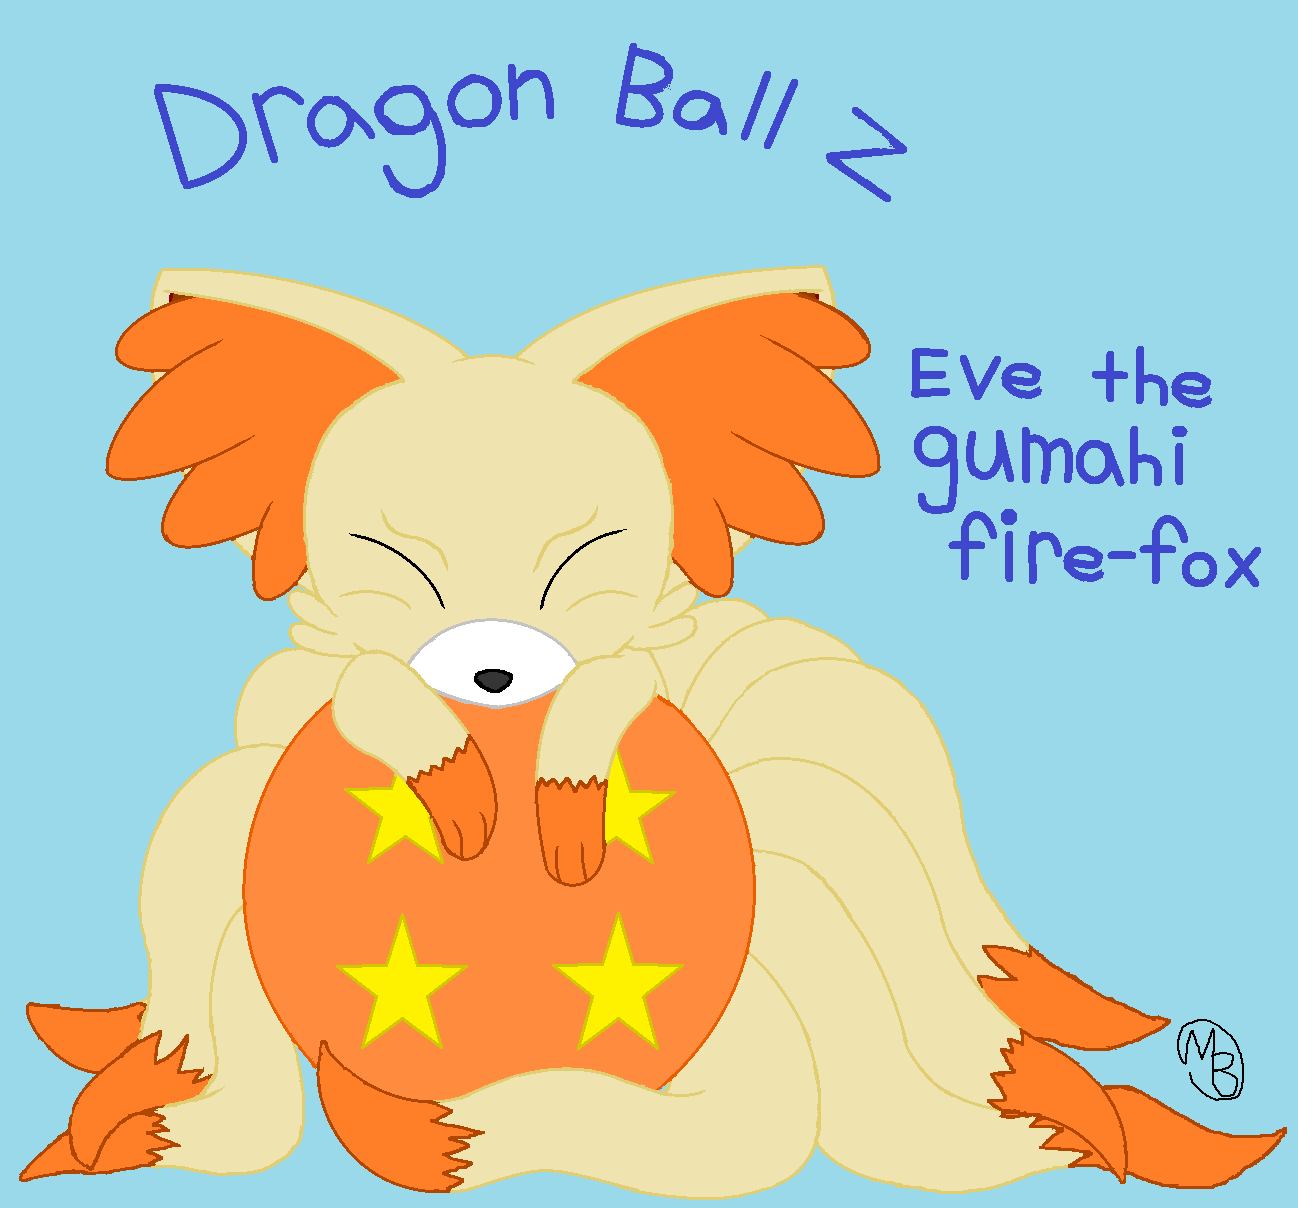 Eve the gumahi fire-fox